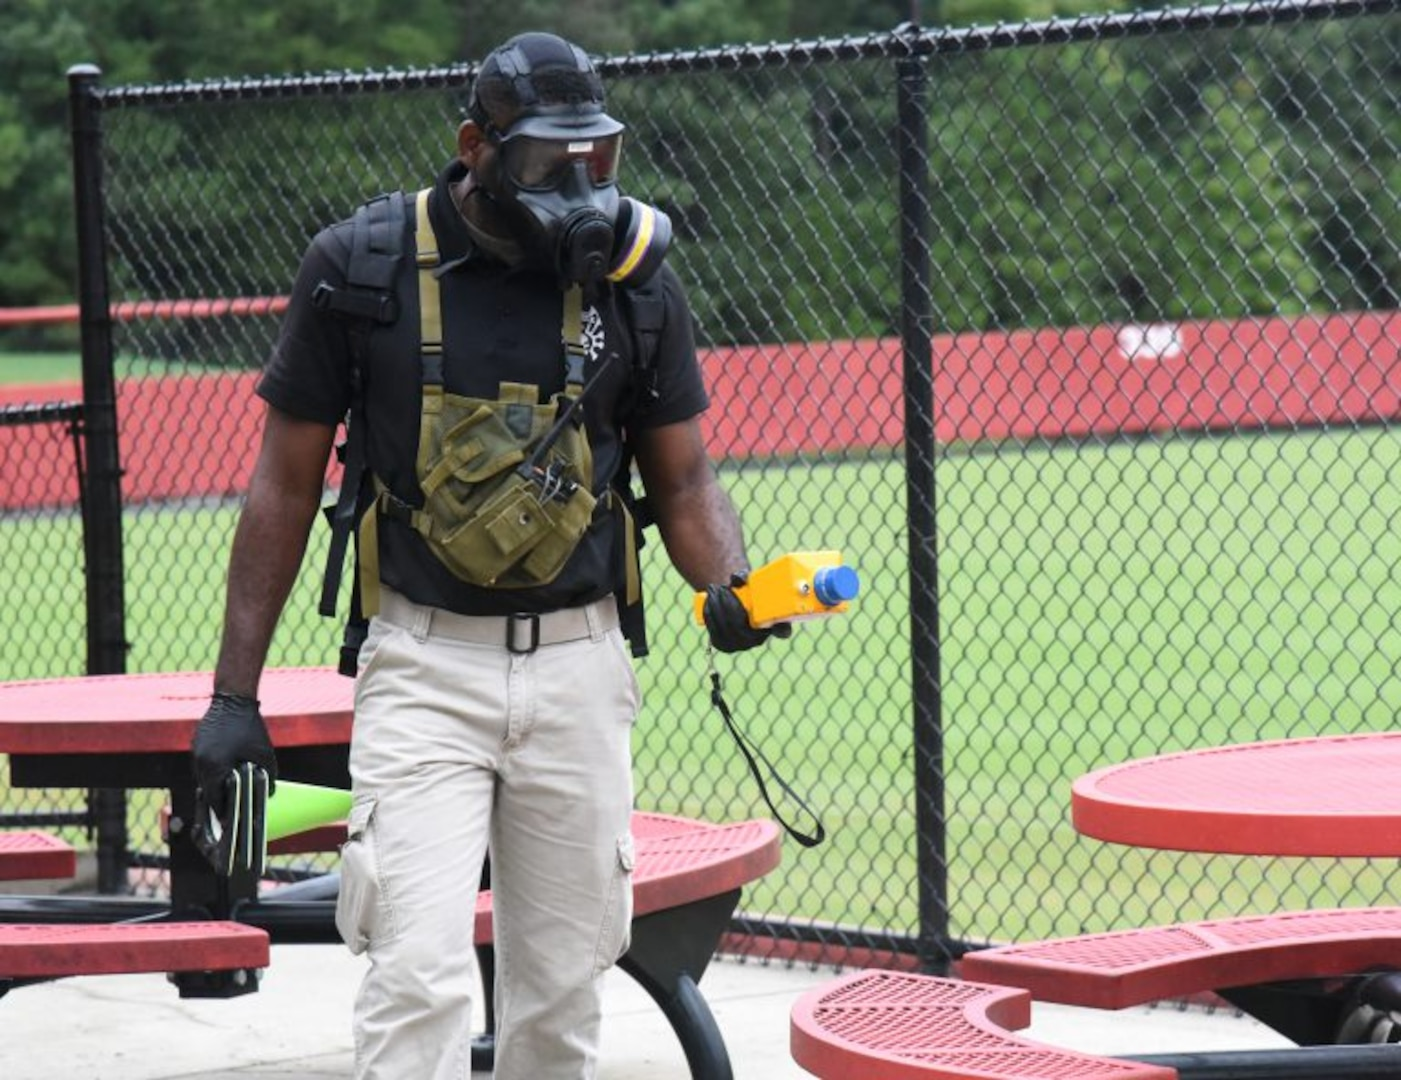 34th CST conducts training with federal, state and local first responders